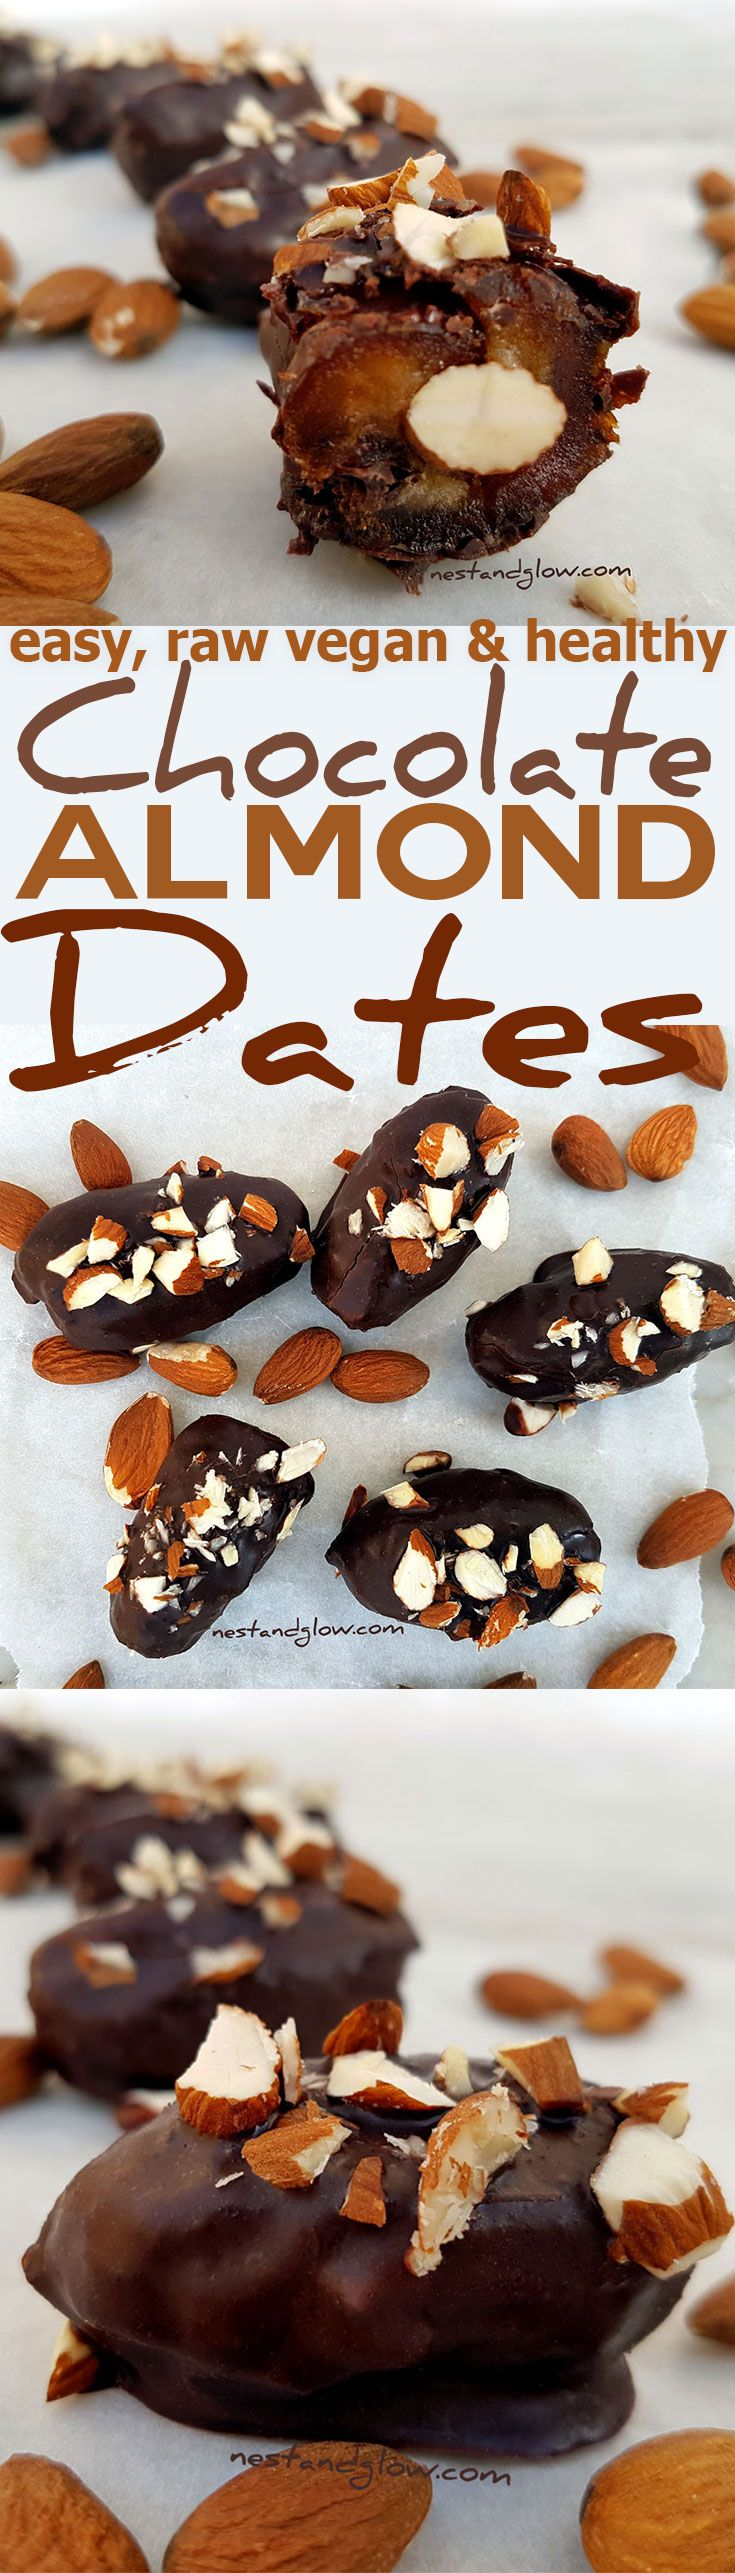 These little indulgent chocolate covered stuffed dates are easy and fun to make but taste delicious. Dairy and sugar free. via @nestandglow